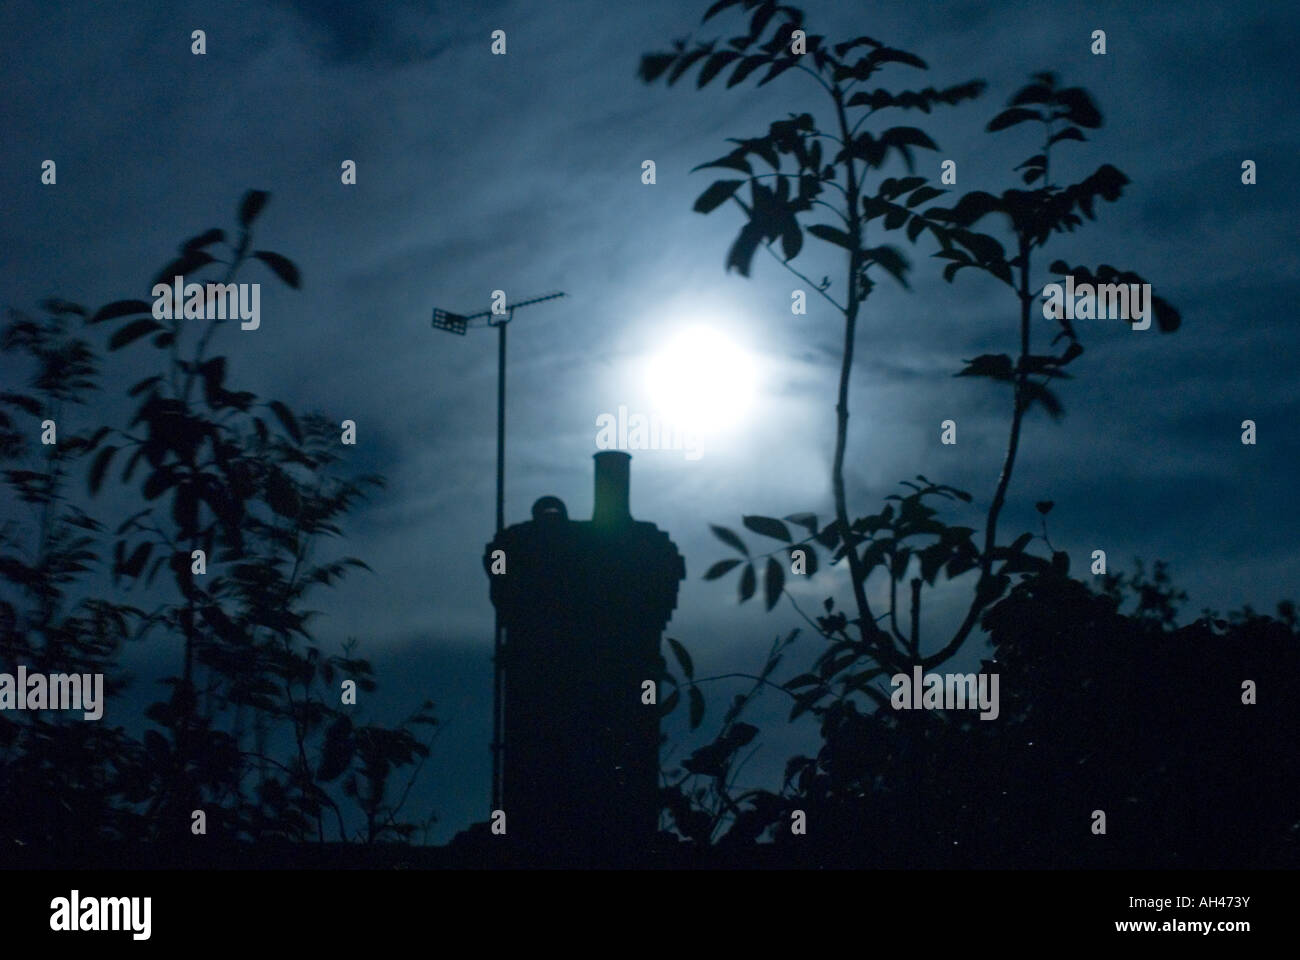 Silouetted Chimney with TV Aerial backlit by full moon with Trees around - Stock Image